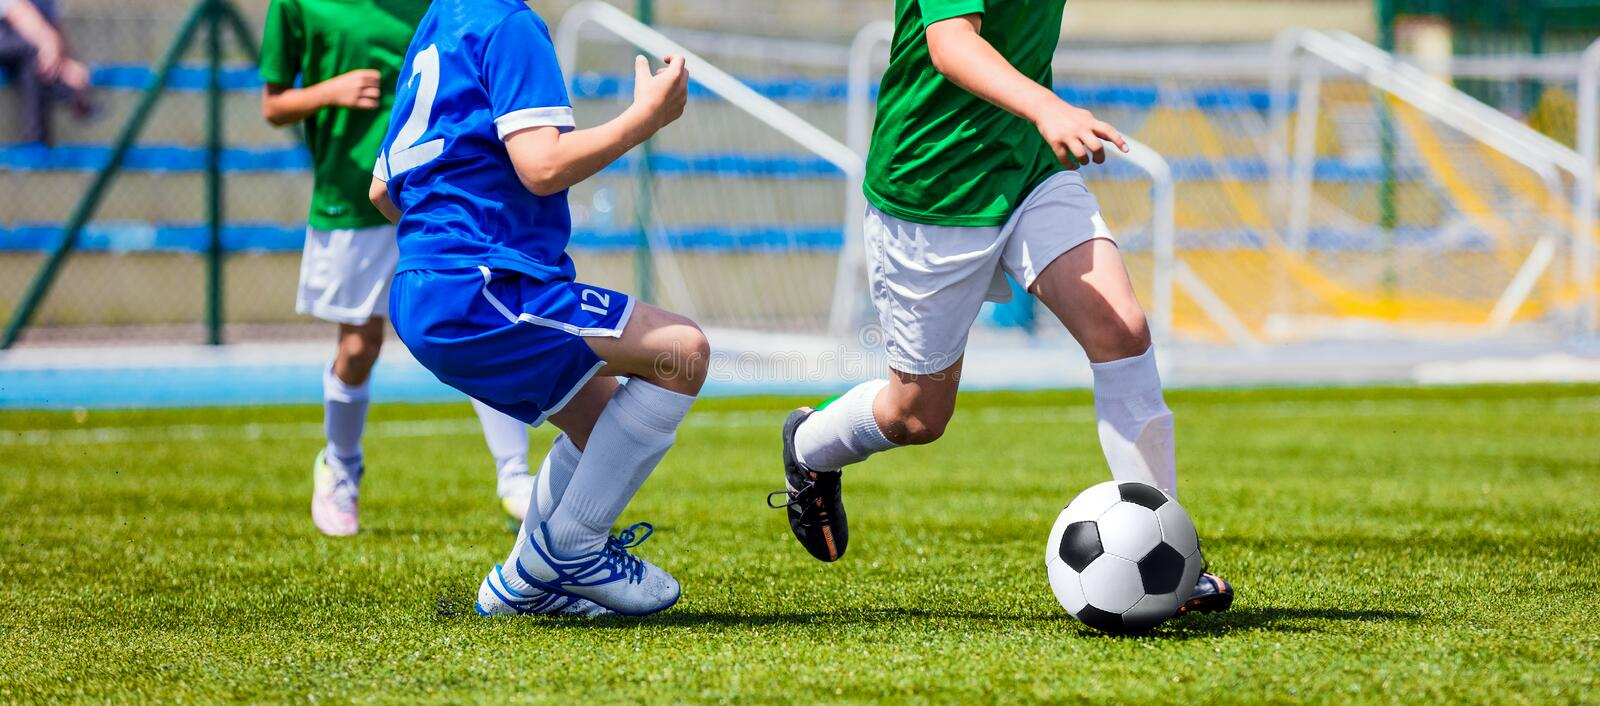 Children Soccer Players Running with the Ball. Kids in Blue and Green Shirts. Children Soccer Players Running with the Ball. Kids in Blue and Green Soccer royalty free stock image